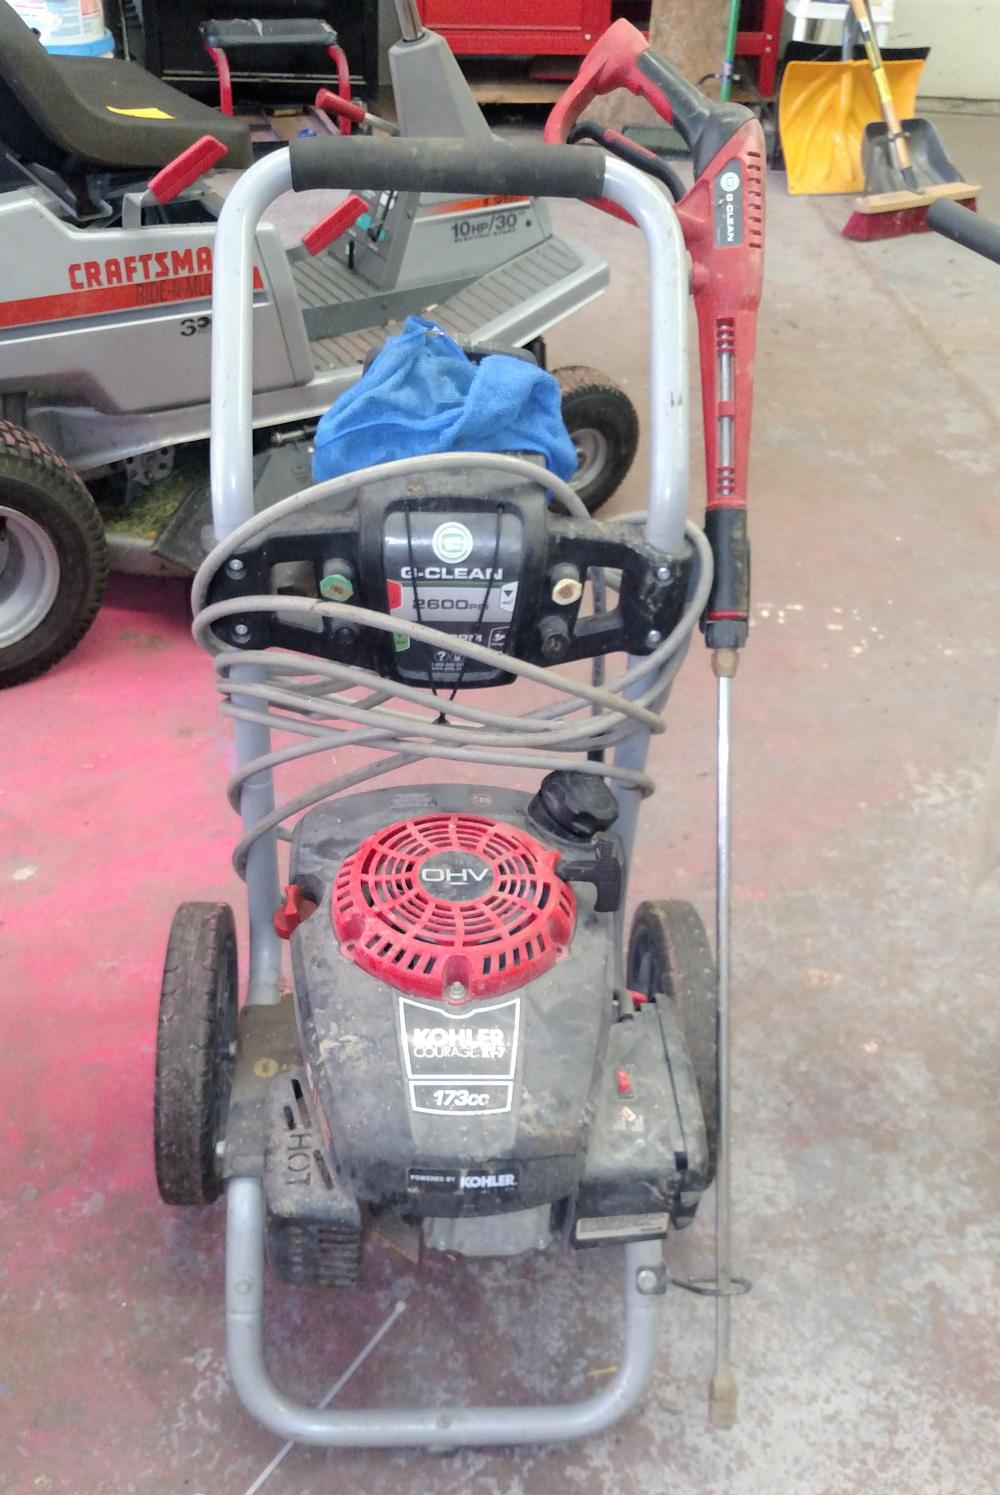 G-clean 2600 psi power washer- runs good